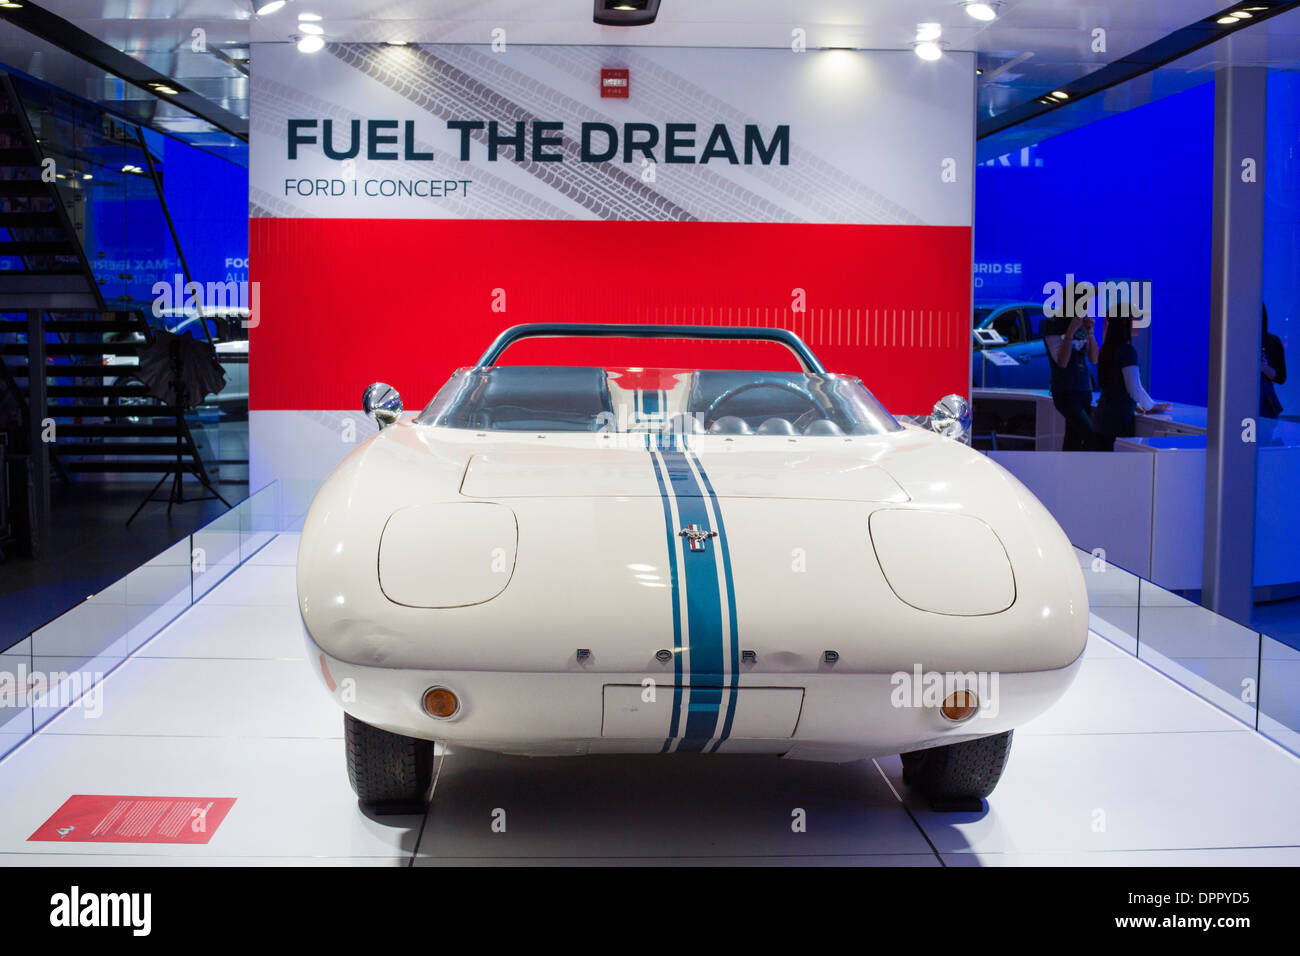 Detroit, Michigan - The 1962 Ford Mustang concept car on display at the North American International Auto Show. - Stock Image